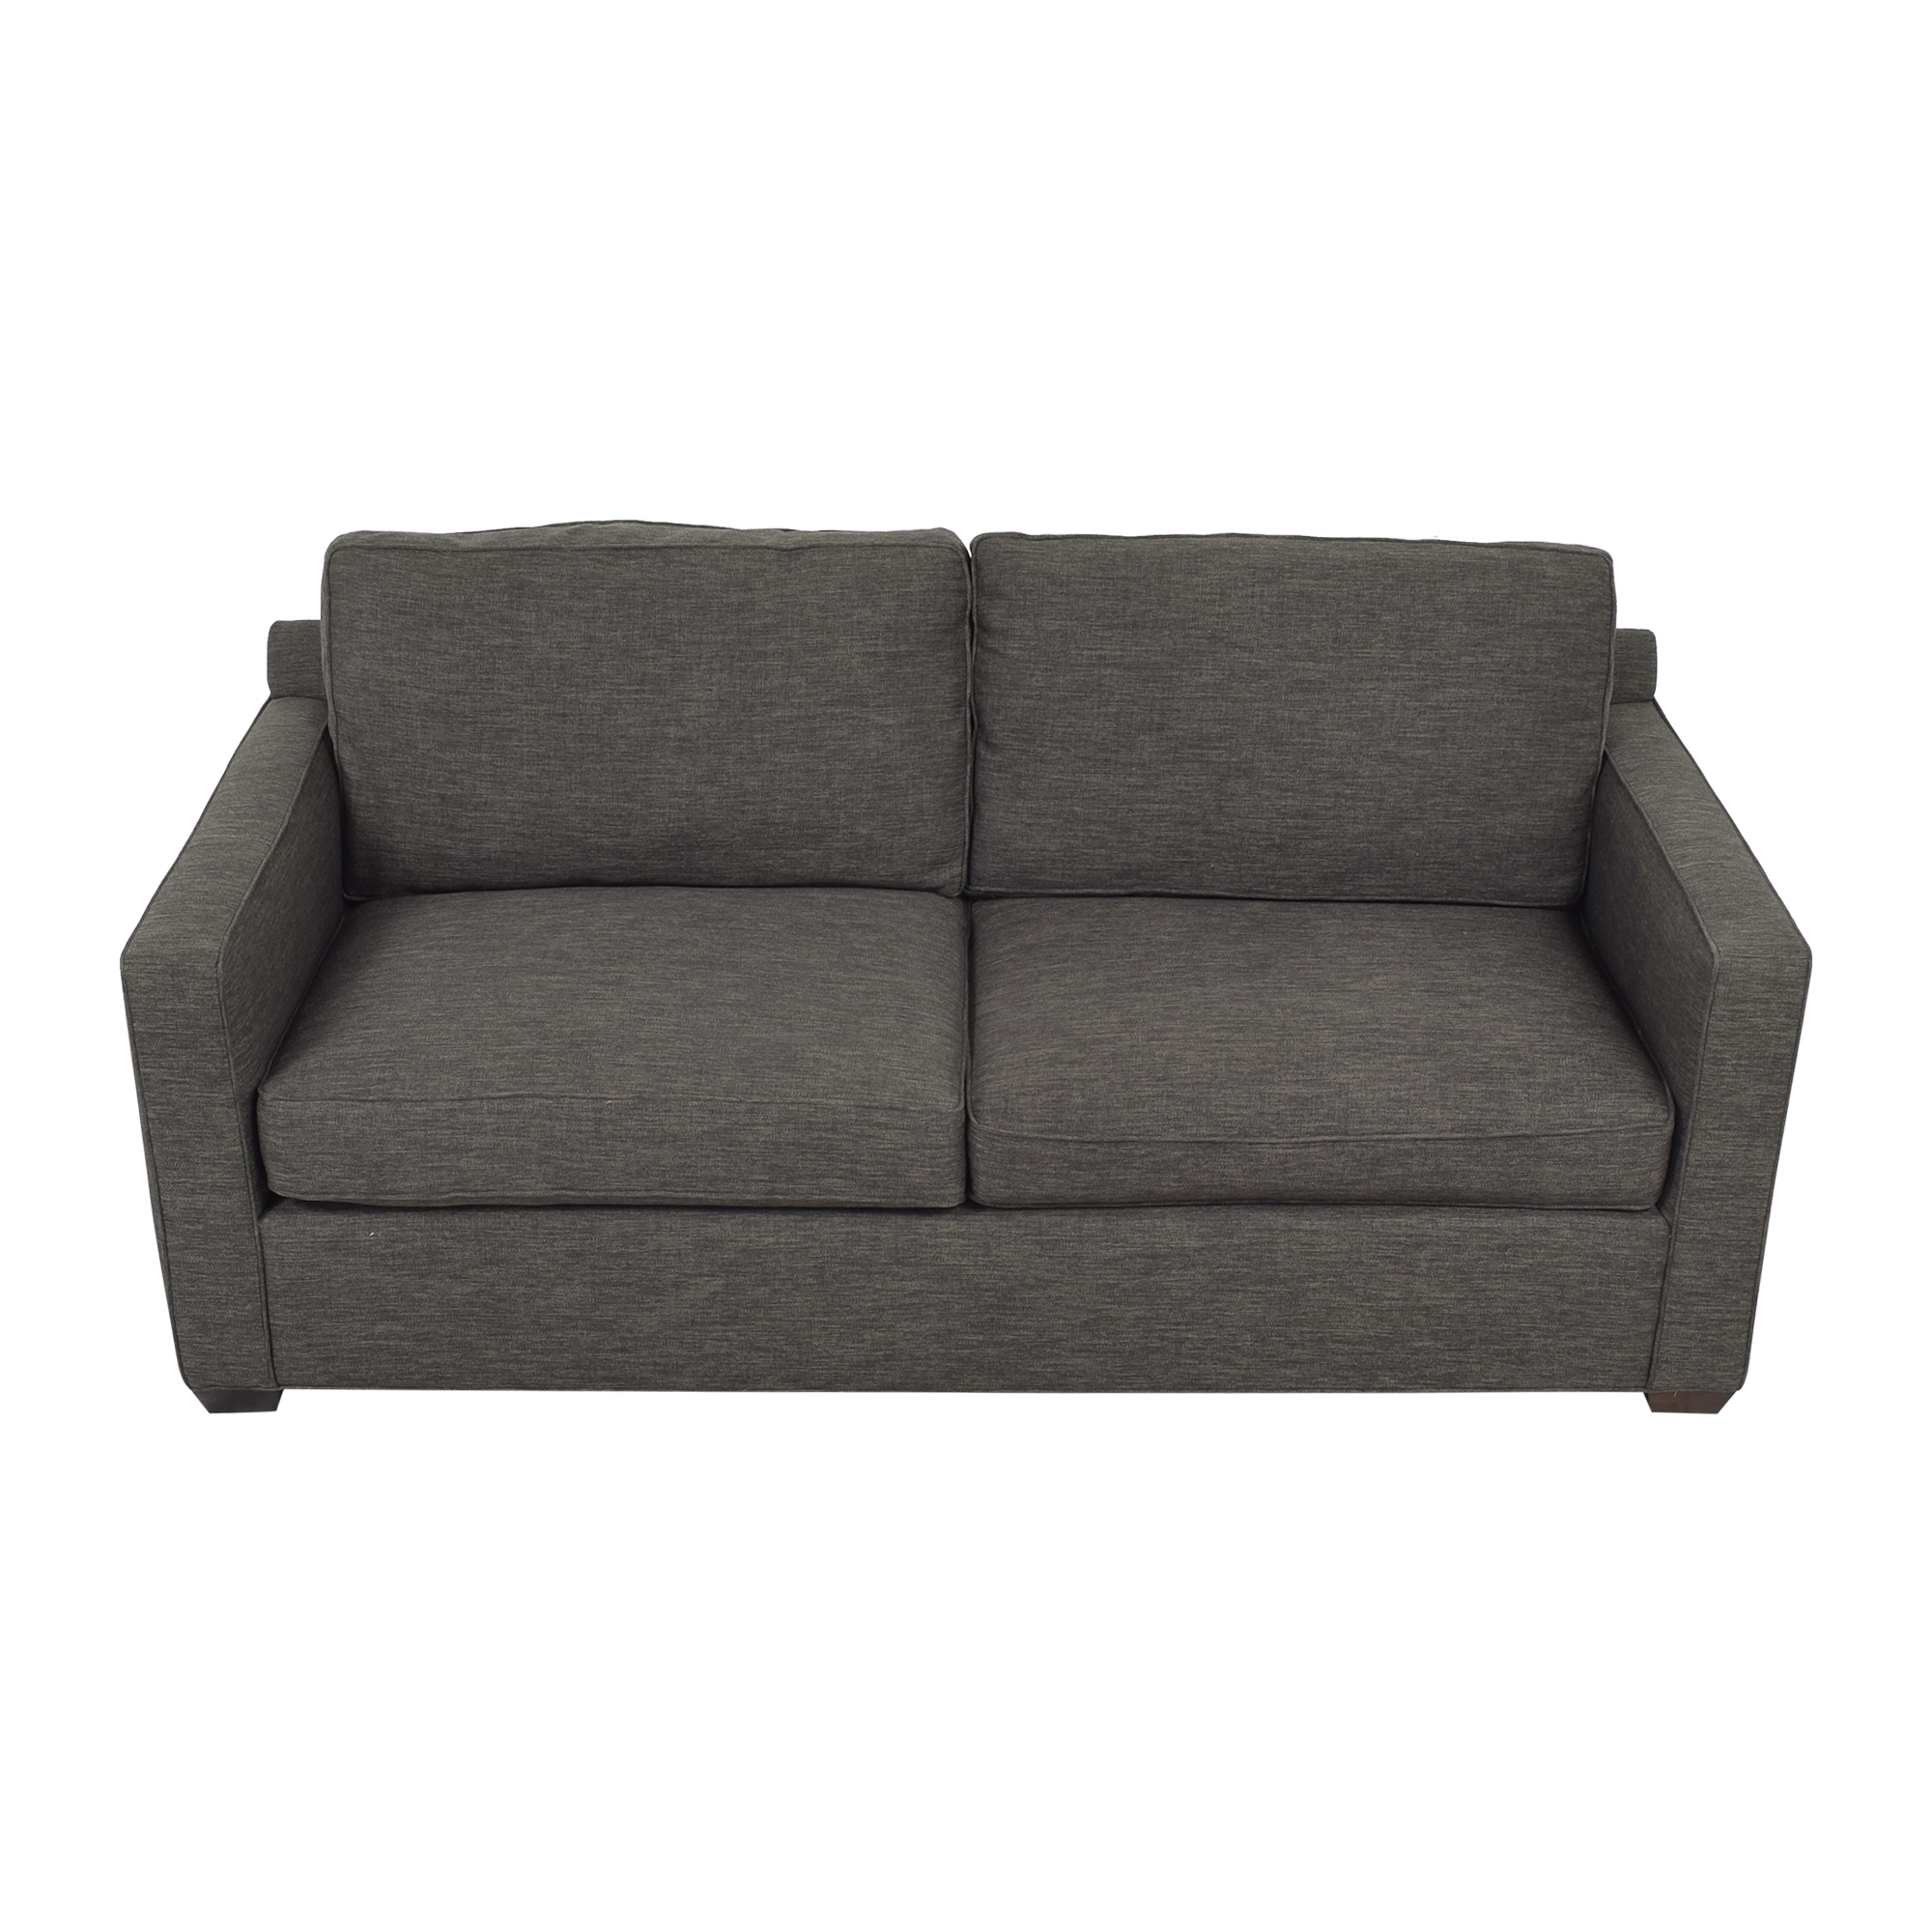 Crate & Barrel Crate & Barrel Davis Two Seat Sofa coupon